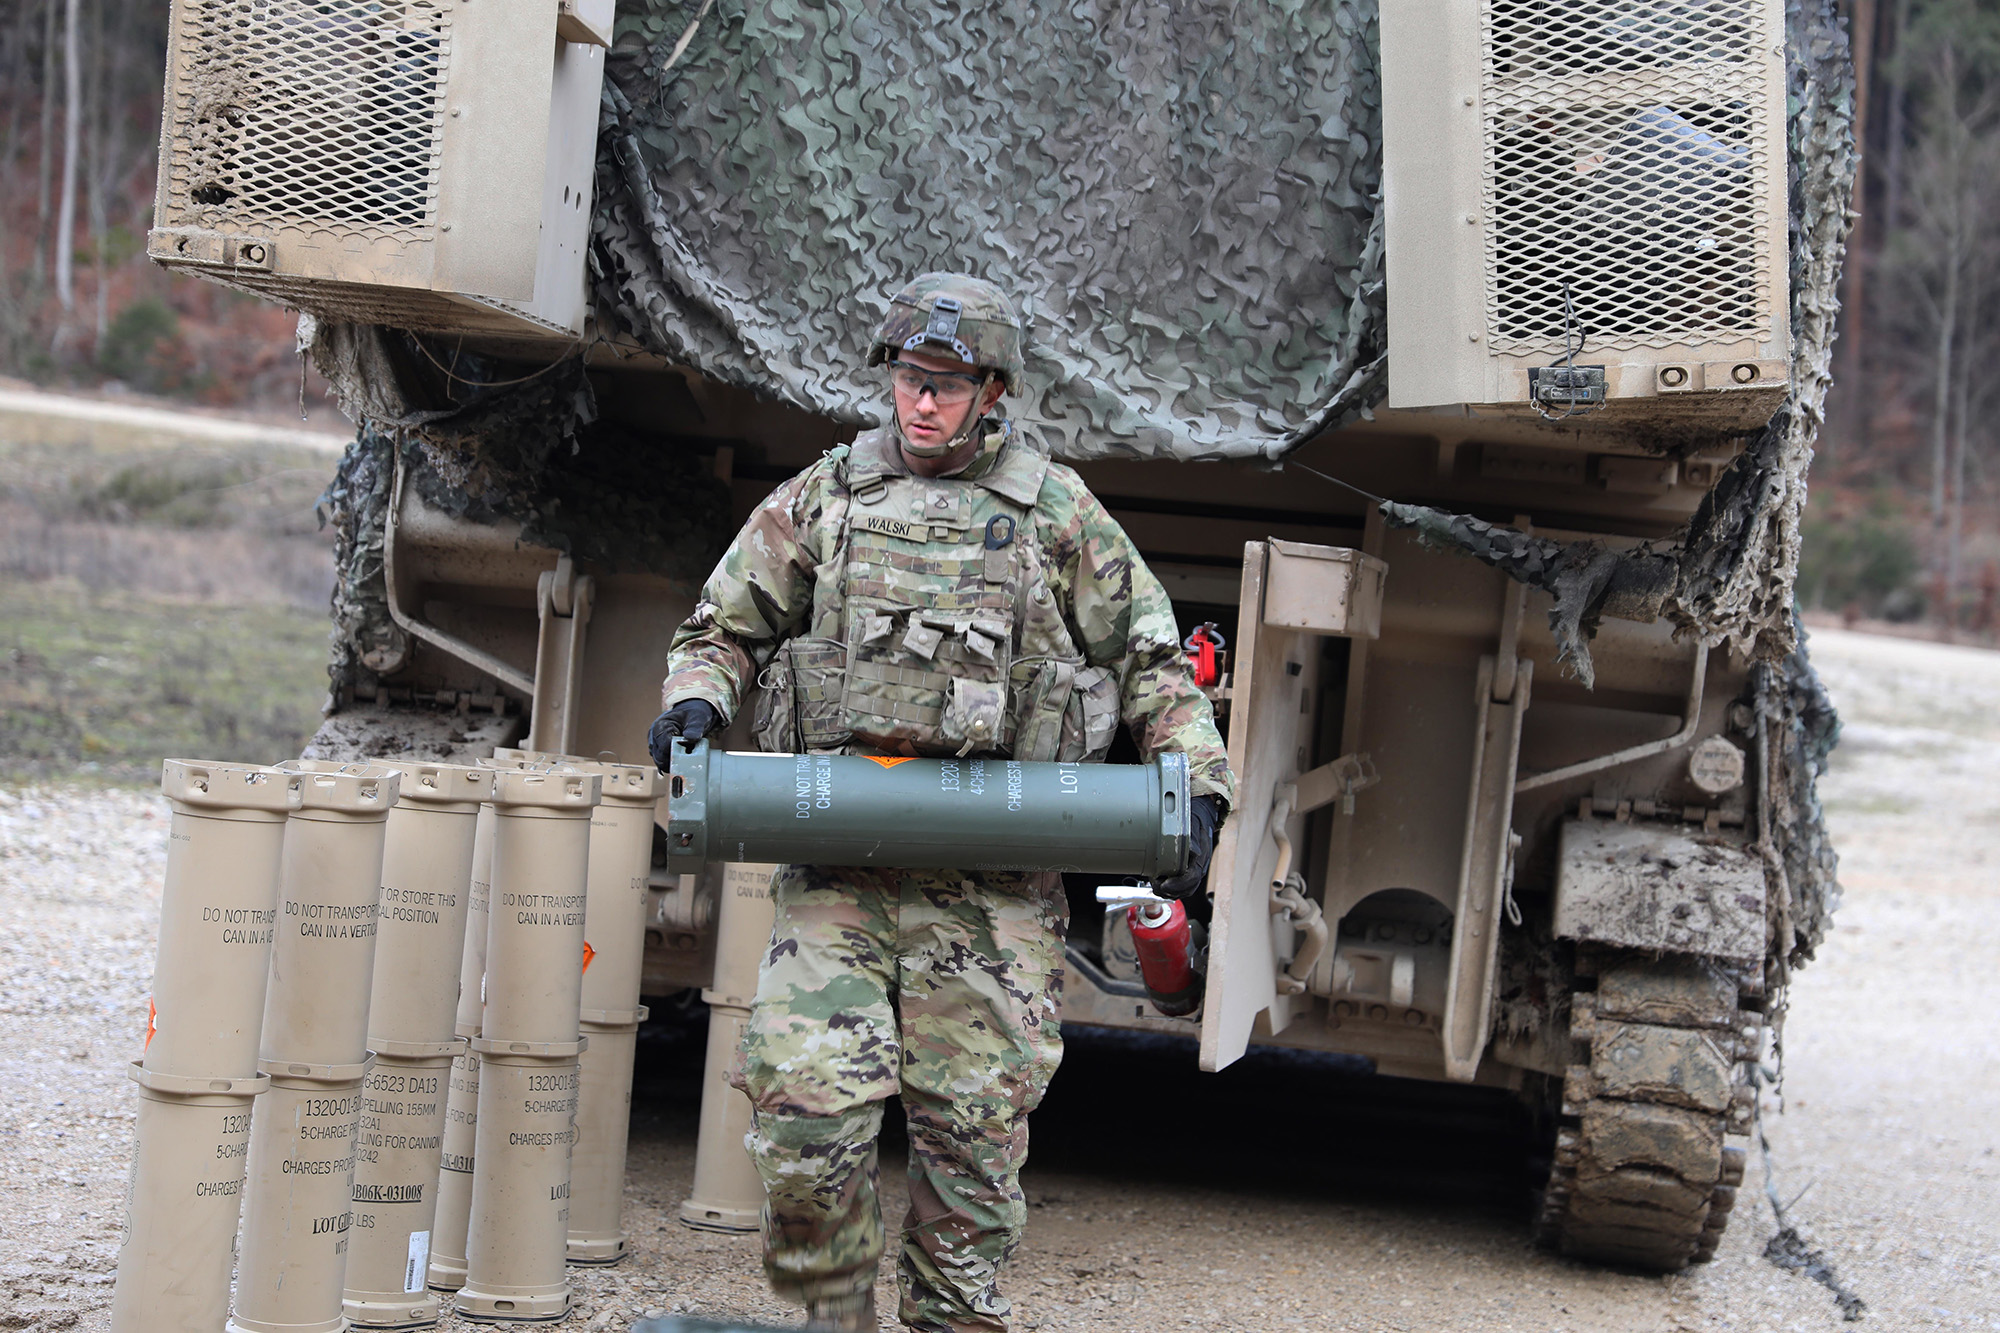 Pfc. Christopher Walski loads 155mm rounds into their Carrier, Ammunition Transport (CAT) in preparation of a Jan. 14, 2020, live-fire exercise in Grafenwoehr, Germany. (Sgt. Megan V. Zander/Army National Guard)